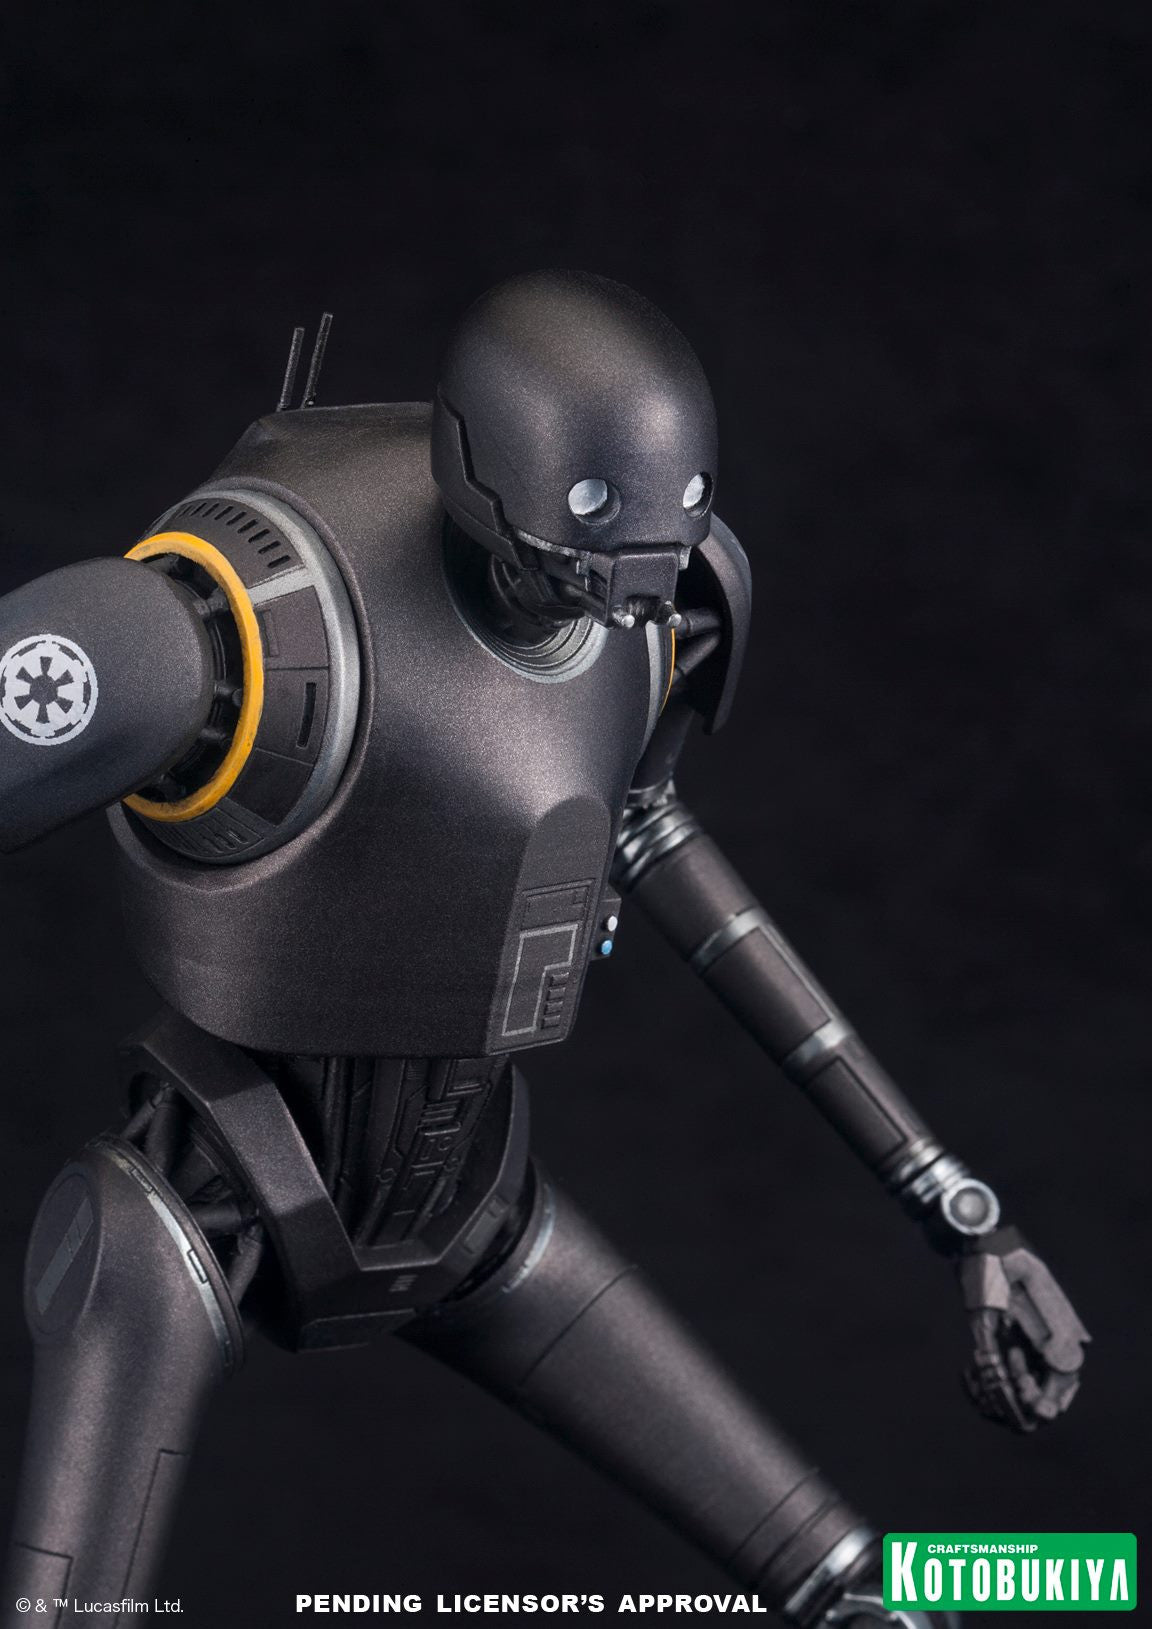 Kotobukiya - ARTFX+ - Rogue One: A Star Wars Story - K-2SO (1/10 scale) - Marvelous Toys - 6